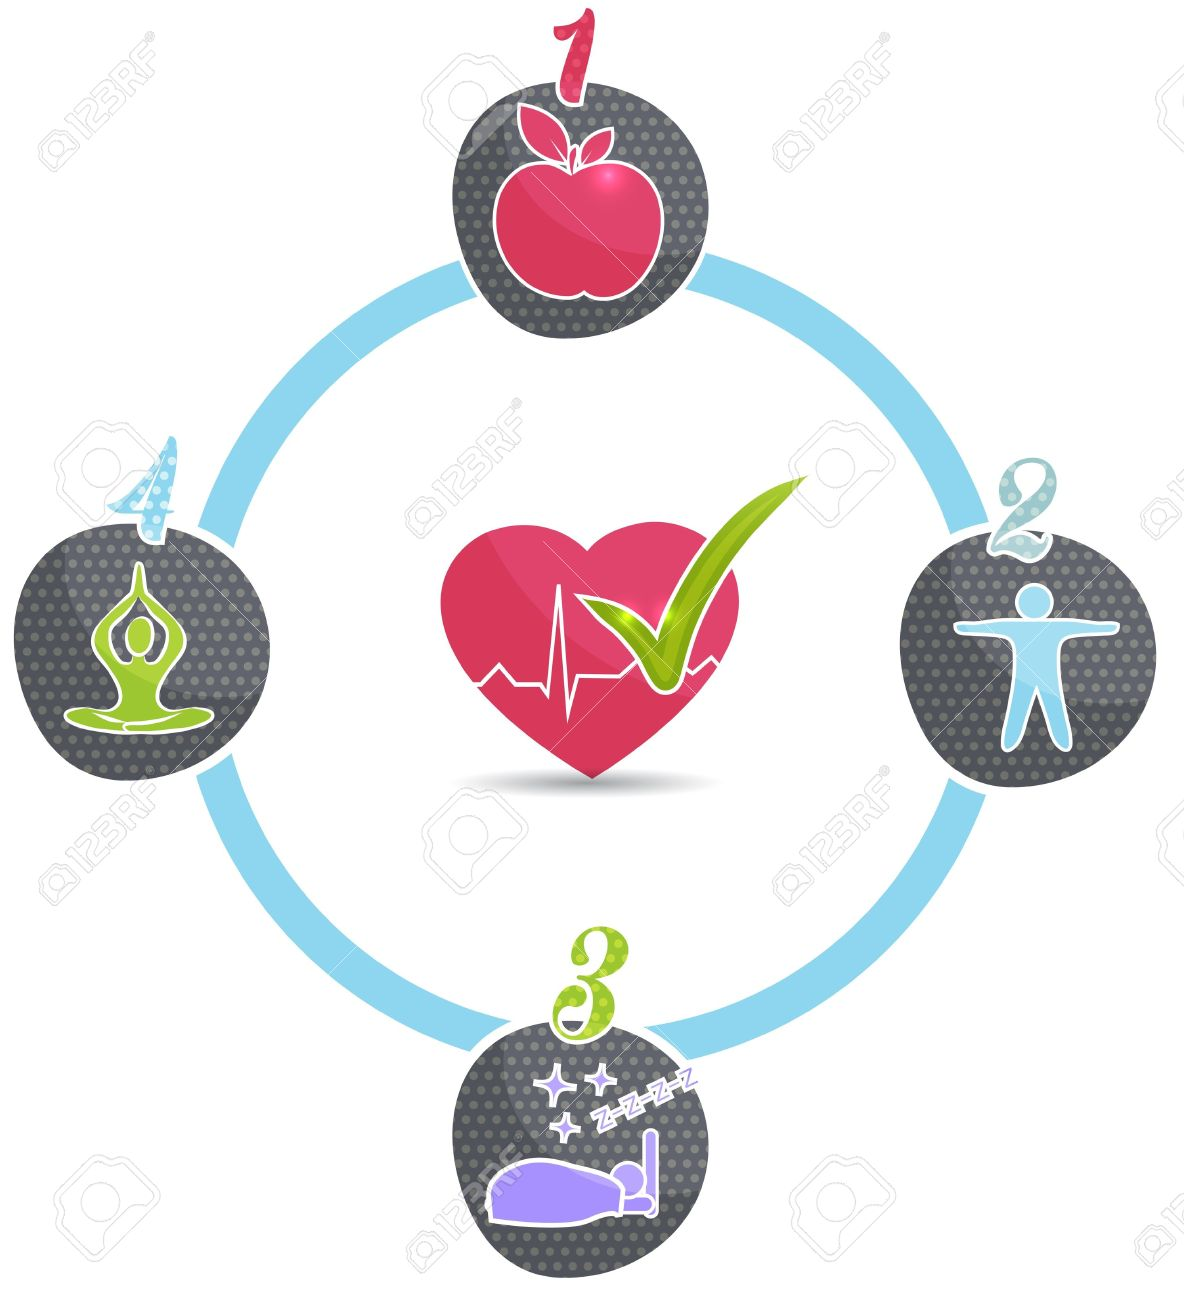 Healthy lifestyle wheel Good sleep, fitness, healthy food, stress management leads to healthy heart and healthy life - 21953227